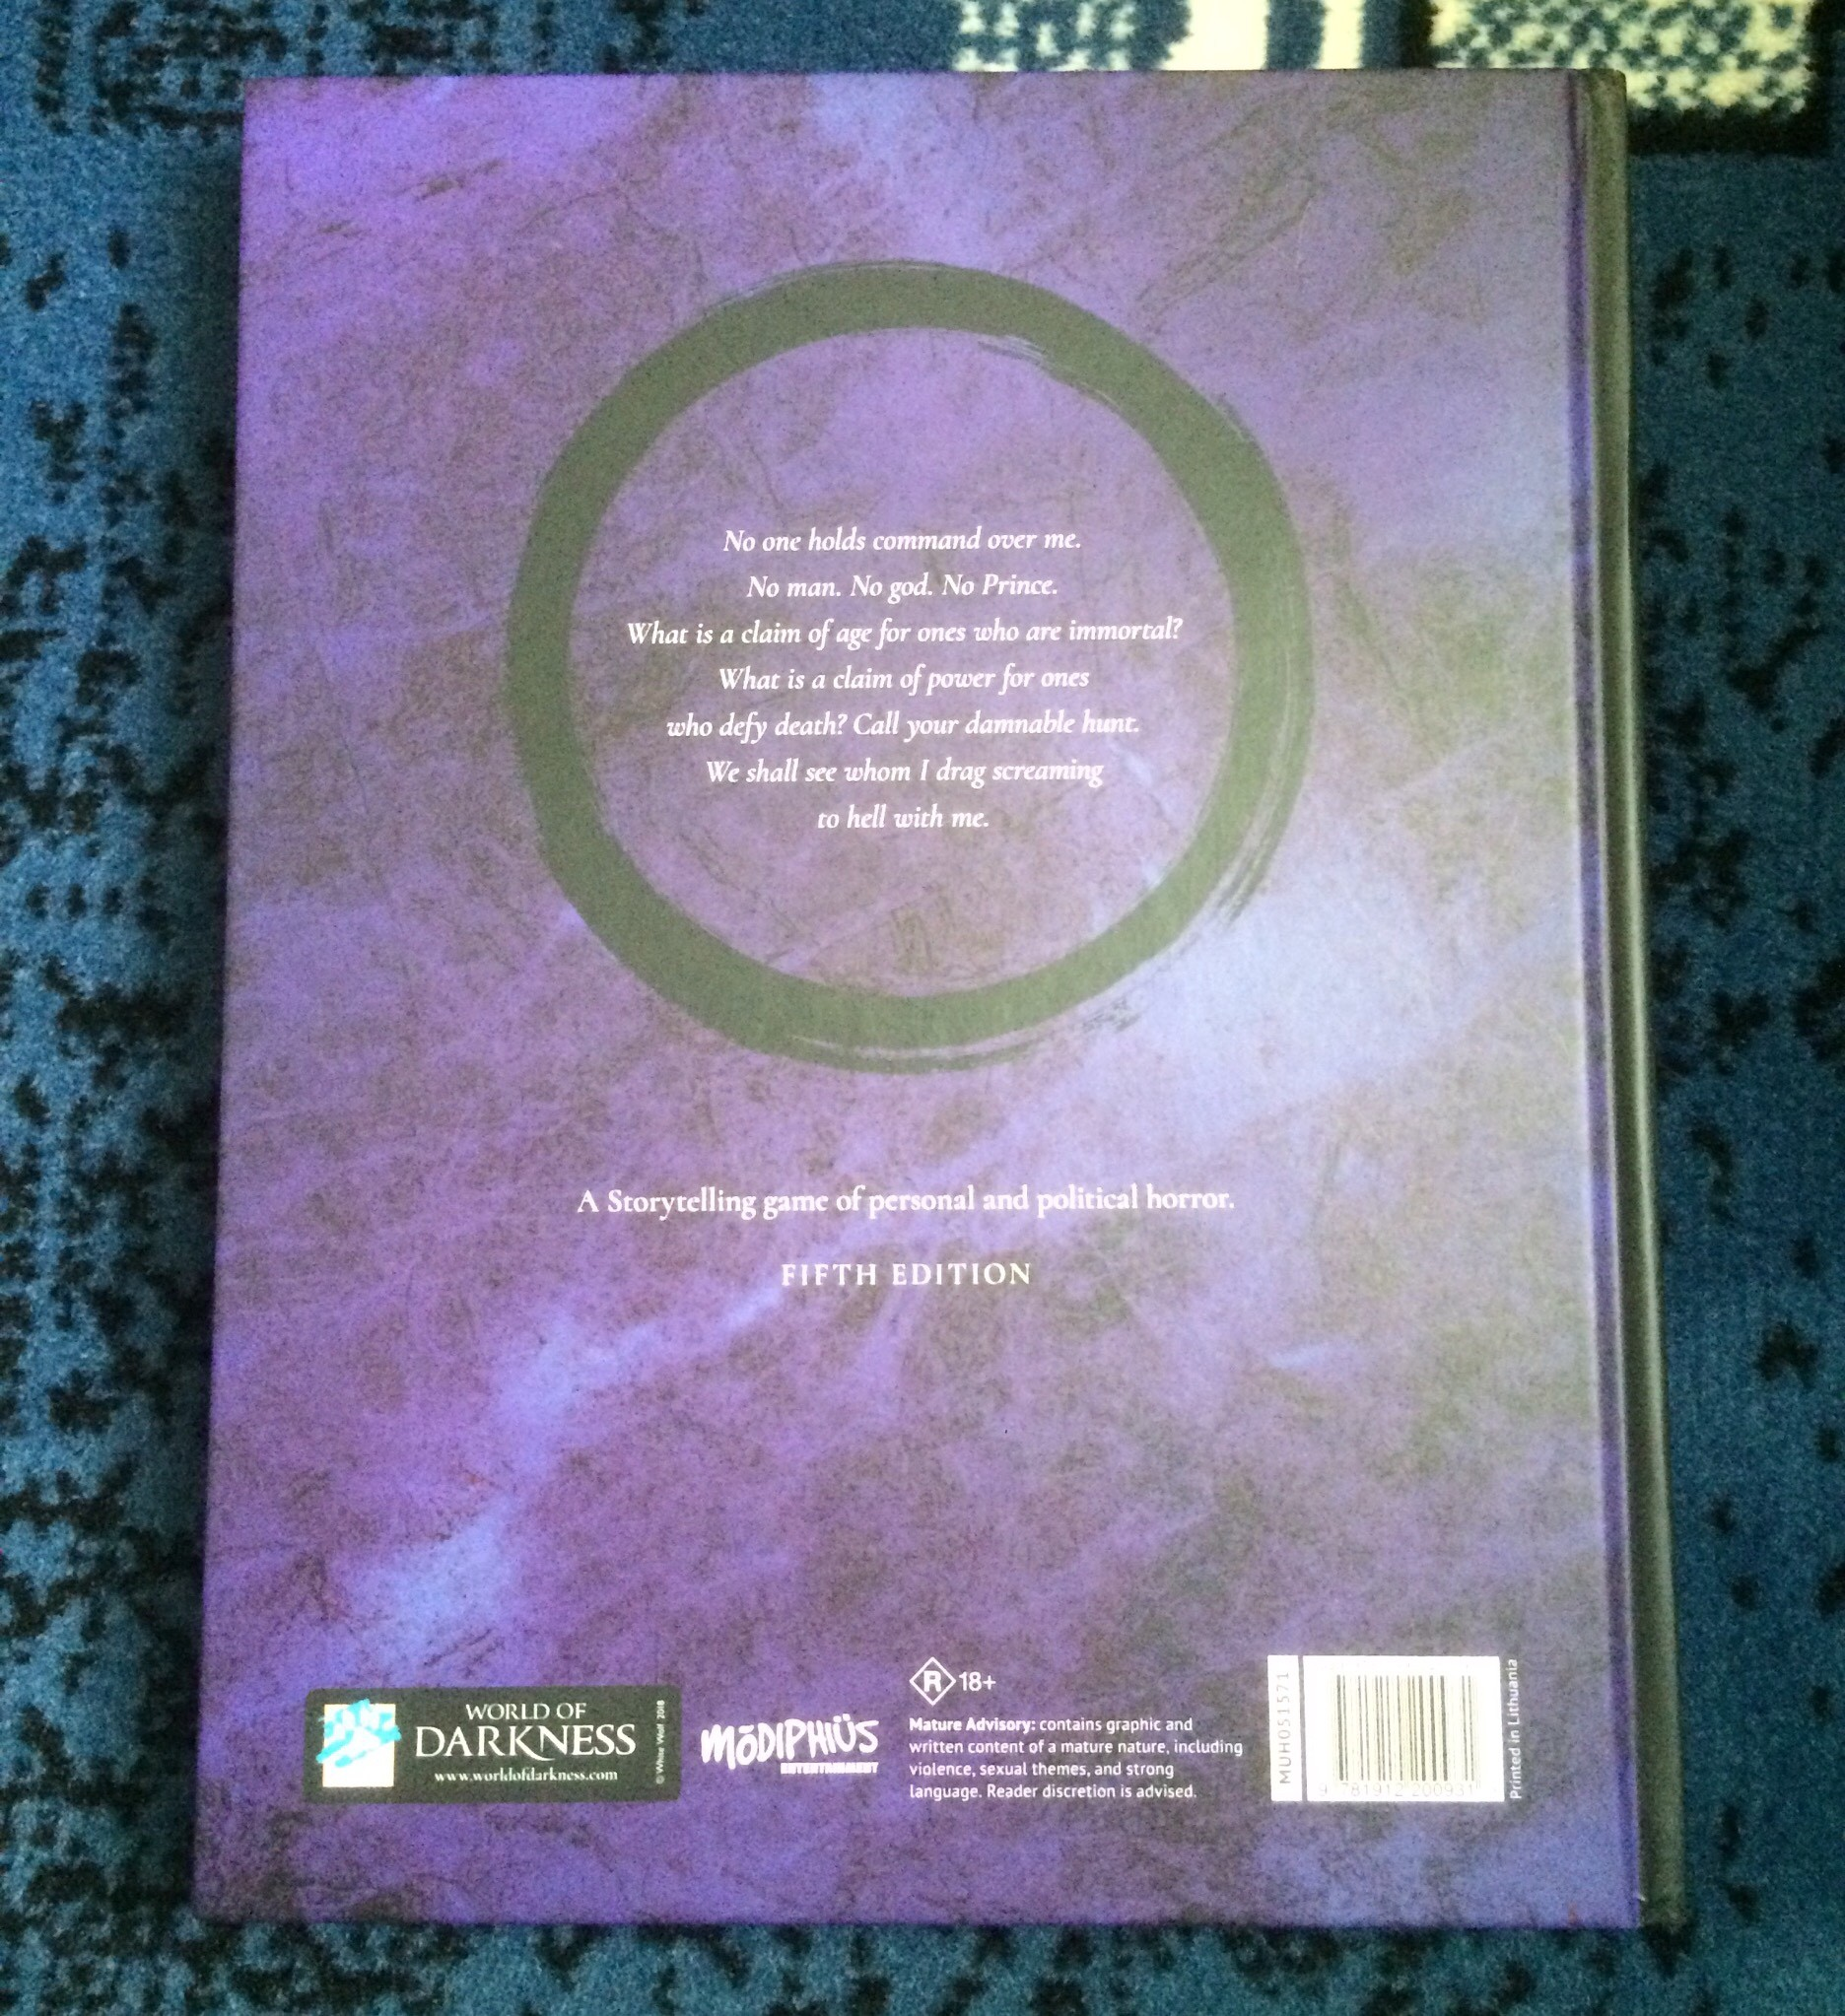 Reviewing The Vampire: The Masquerade Rule Books: Part 1